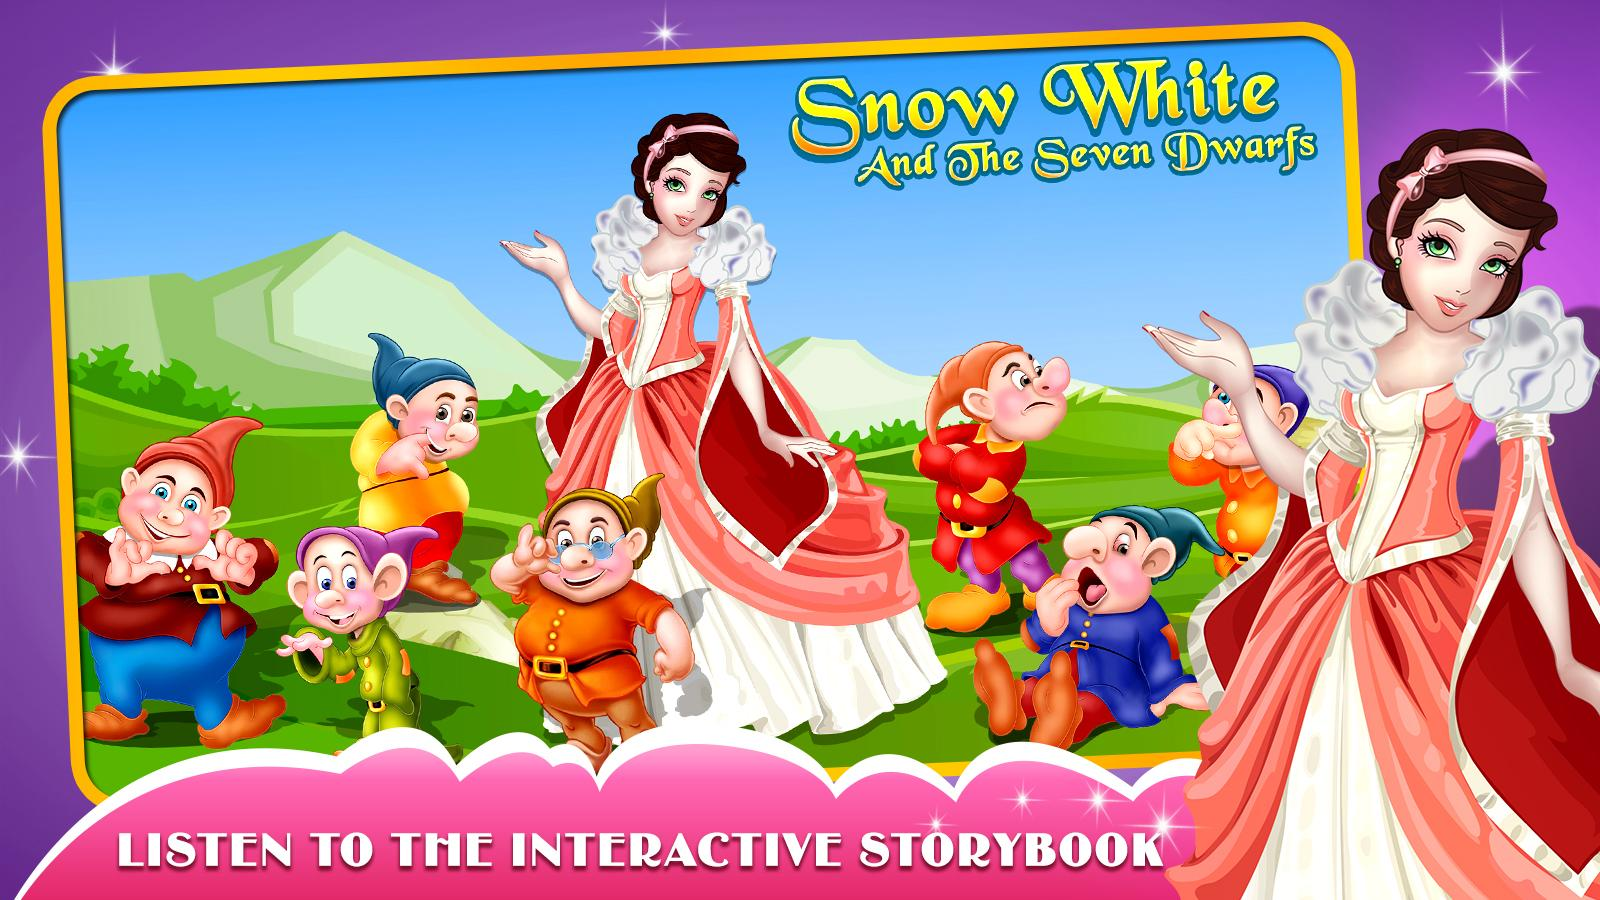 Snow White 7 Dwarfs Story Book 1 0 APK Download - Android